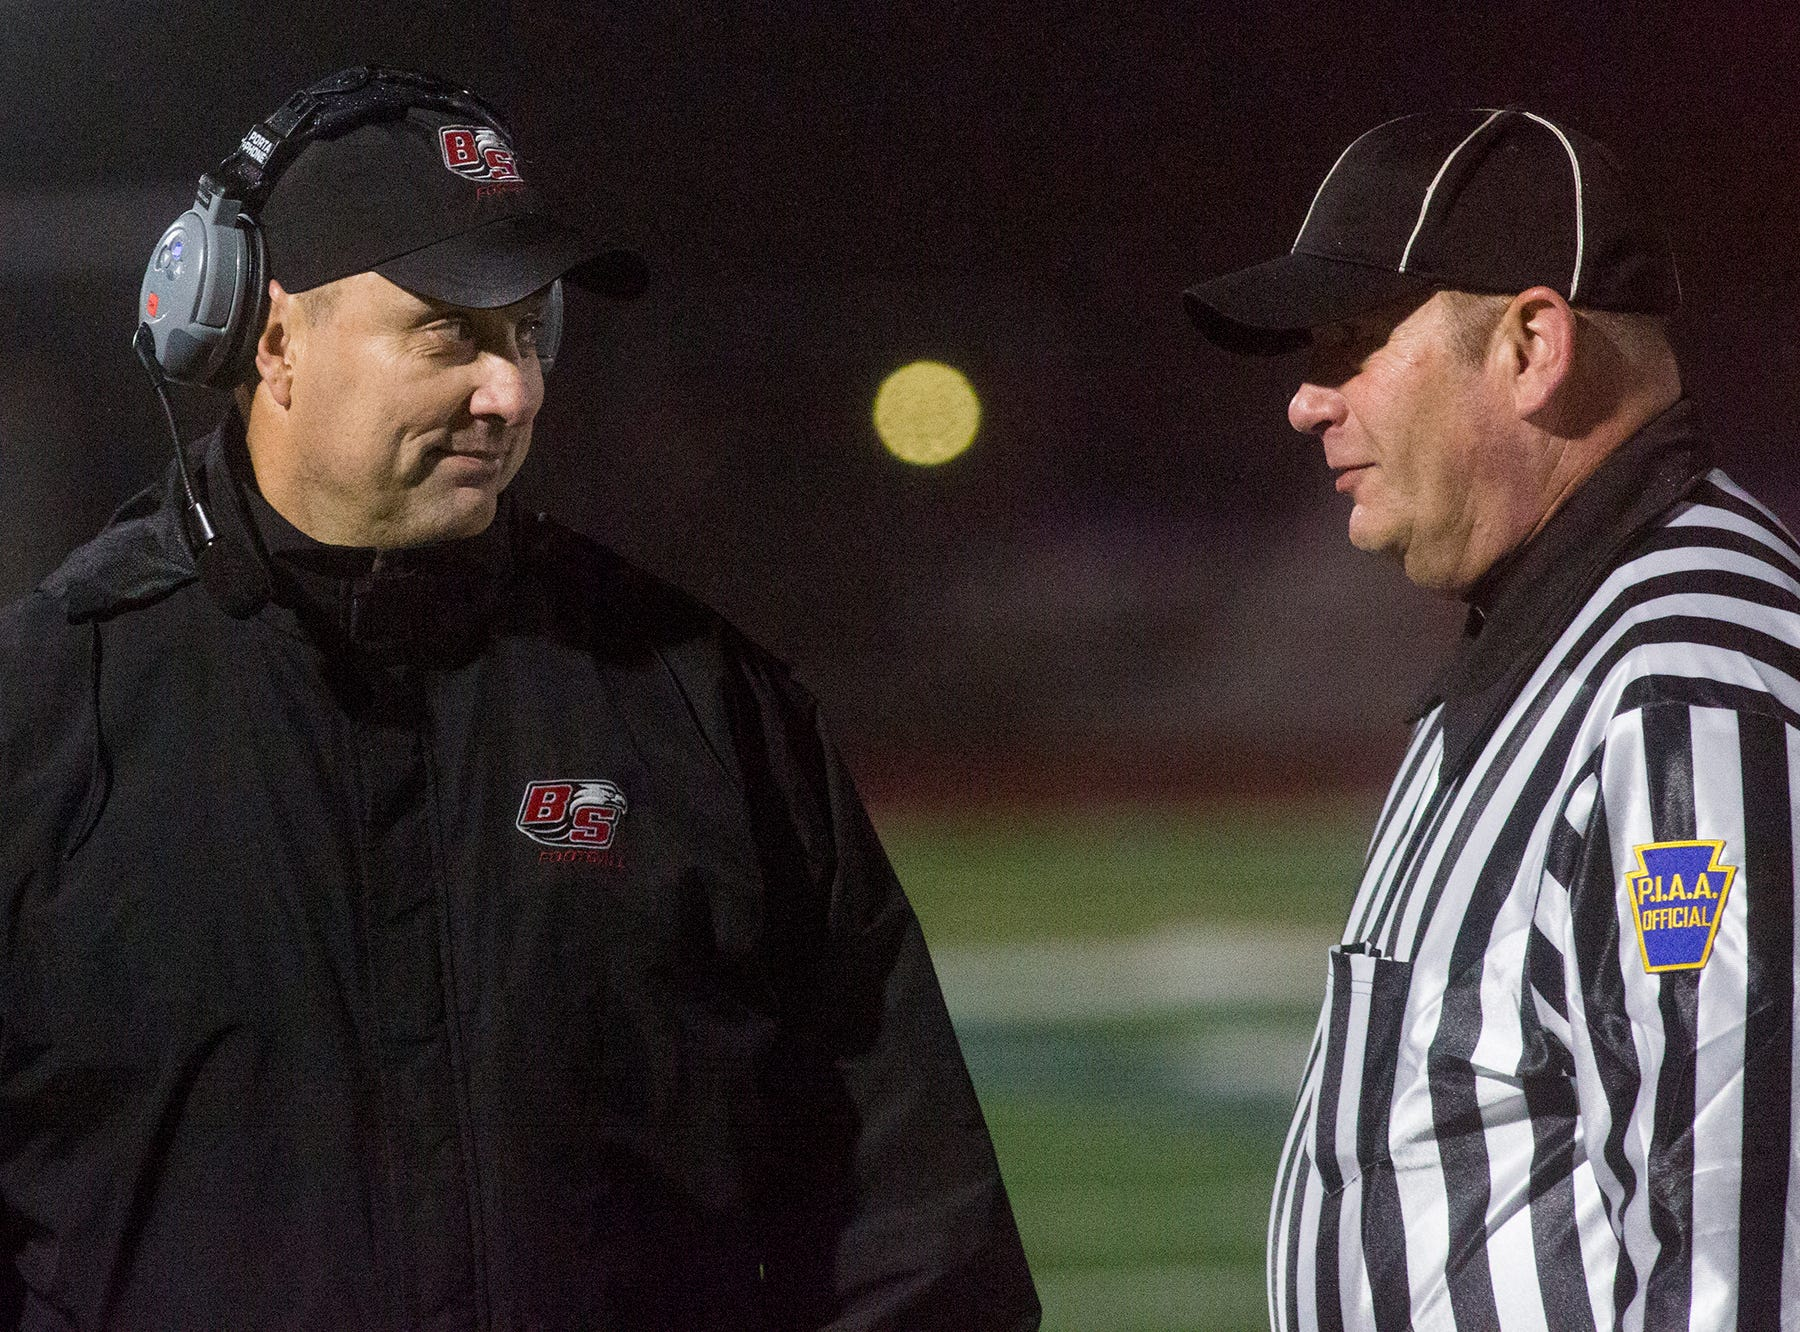 Bermudian Springs head coach Jon DeFoe, left, speaks with an official during the game. Bermudian Springs defeats Lancaster Catholic 20-10 in a District 3 Class 3A semifinal football game at Lancaster Catholic's Crusader Stadium, Friday, November 9, 2018.